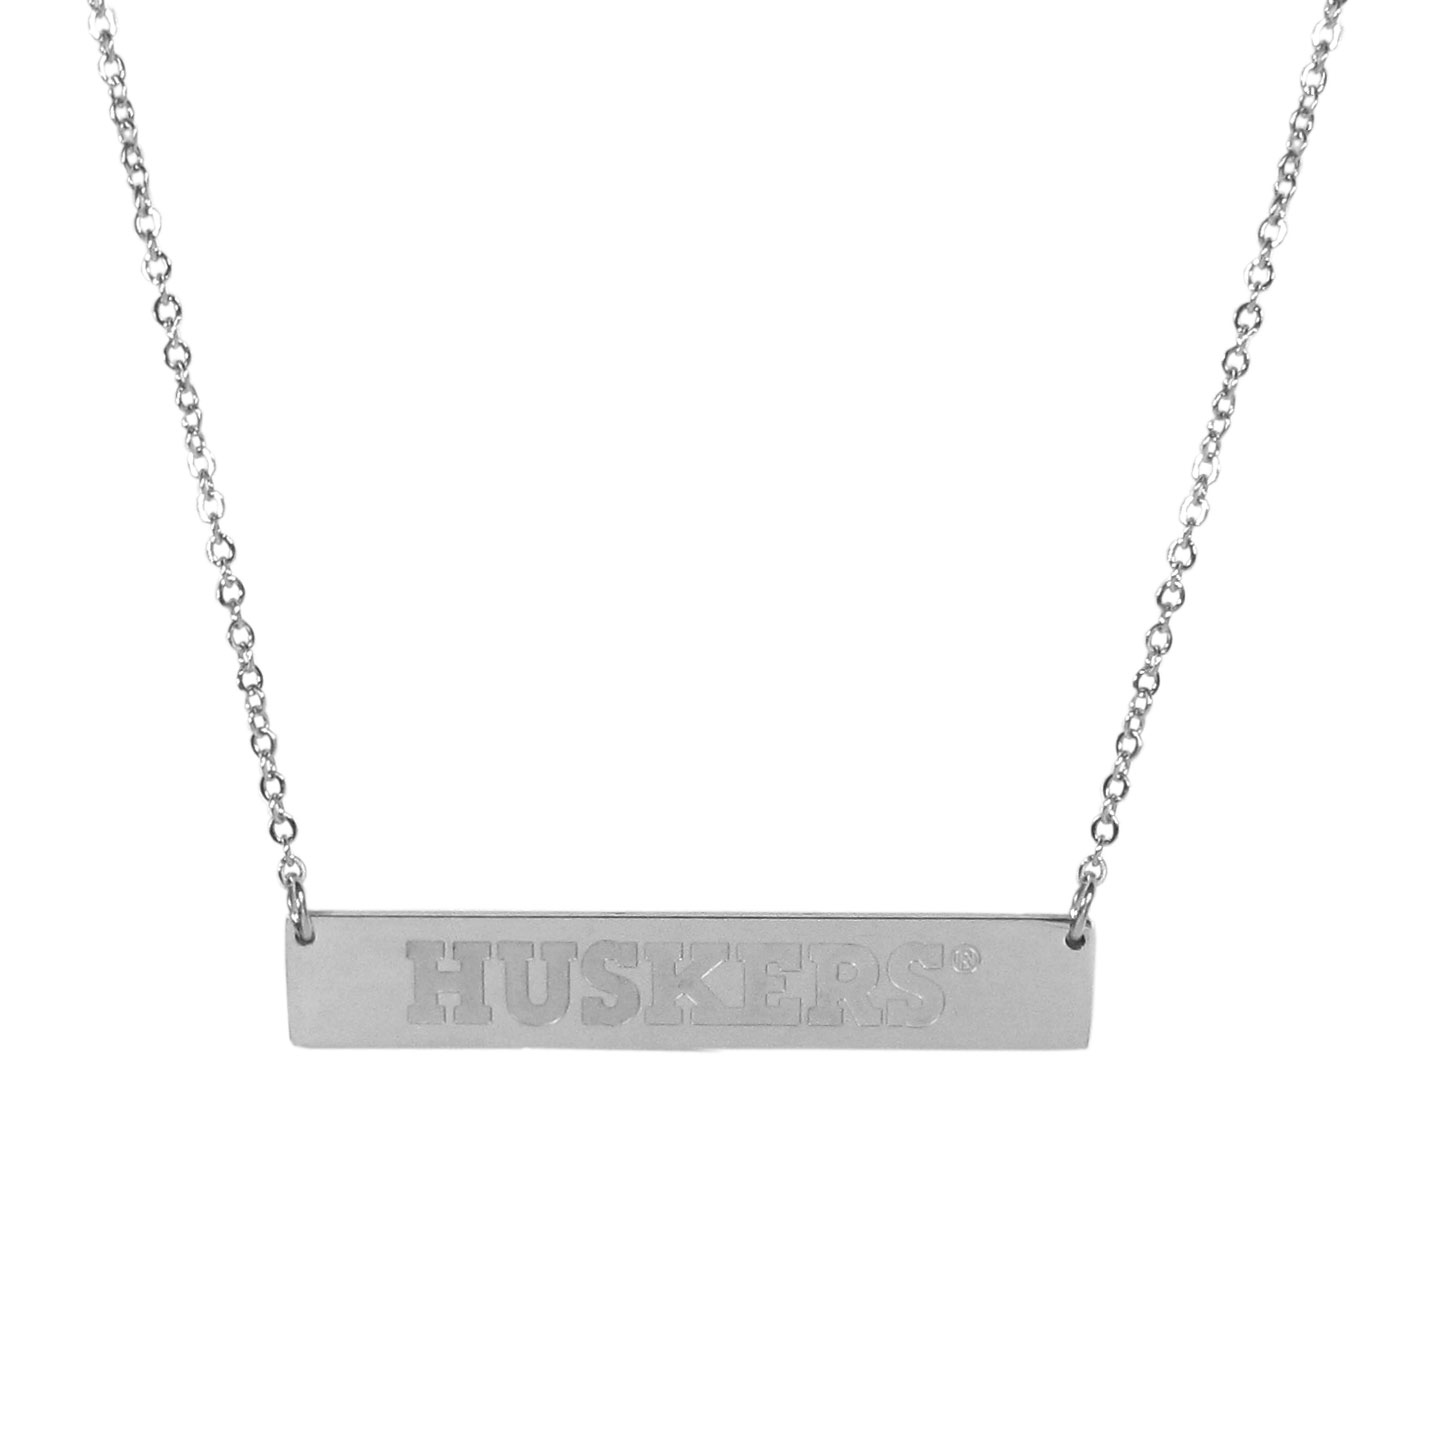 Nebraska Cornhuskers Bar Necklace - Simply beautiful Nebraska Cornhuskers bar necklace on a 20 inch link chain with 2 inch adjustable extender. This light-weight bar necklace has a stylish silver colored finish with the team name expertly etched on the 1.5 inch bar. Every female  fan will enjoy this contempory fashion accessory.